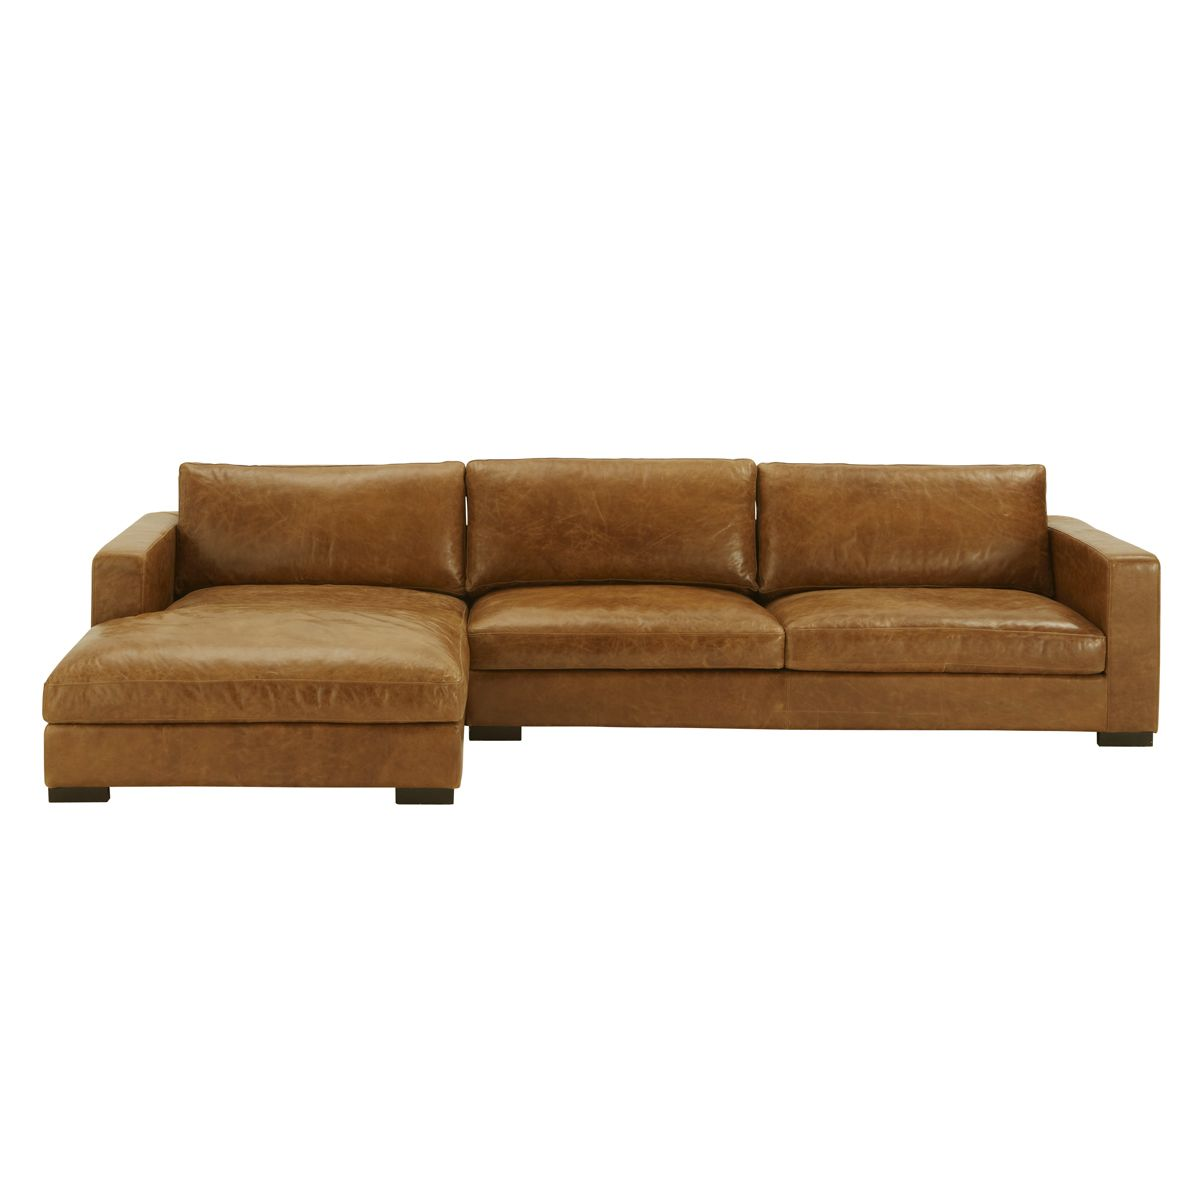 california sofa mfg protector for dogs uk canapé d 39angle 5 places fixe cuir vintage marron lincoln